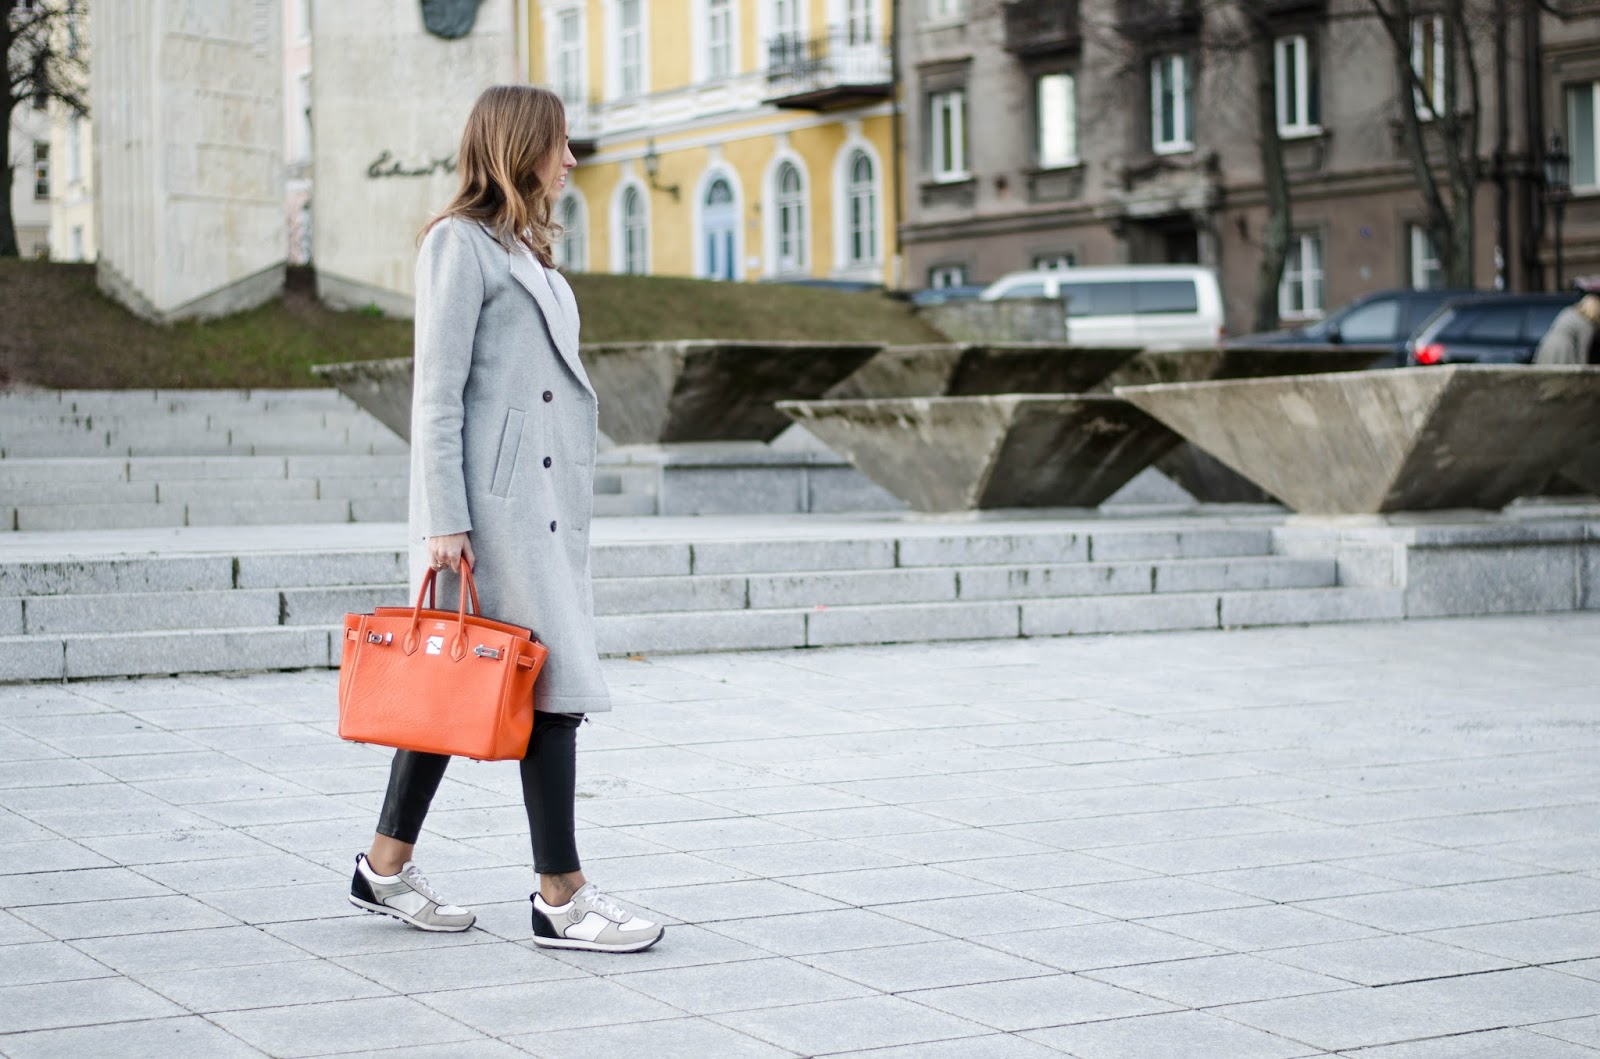 kristjaana mere winter black white gray outfit with orange hermes birkin bag